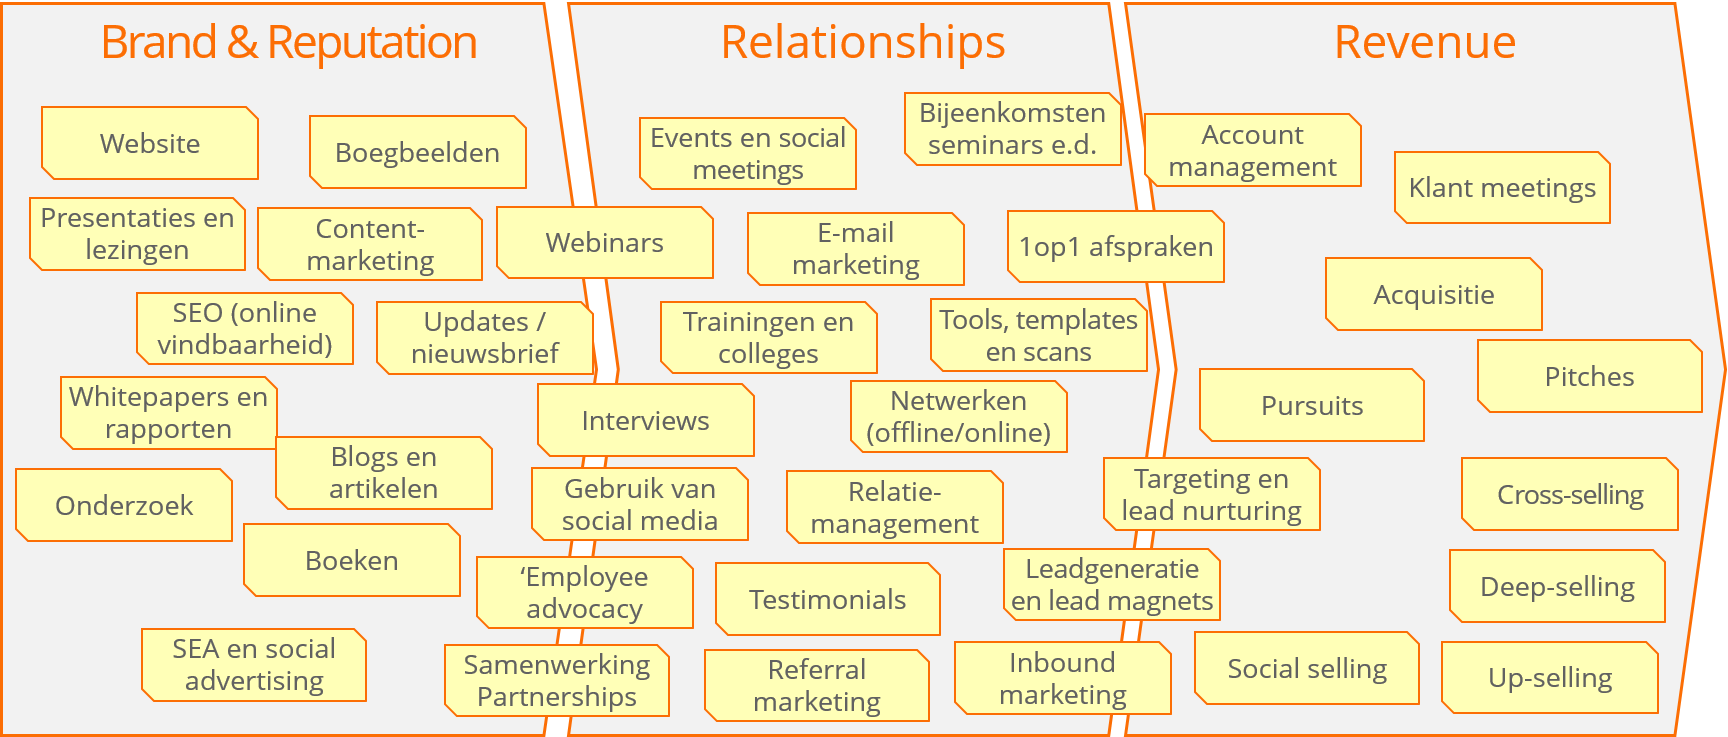 Voorbeelden van marketing- en business development-instrumenten